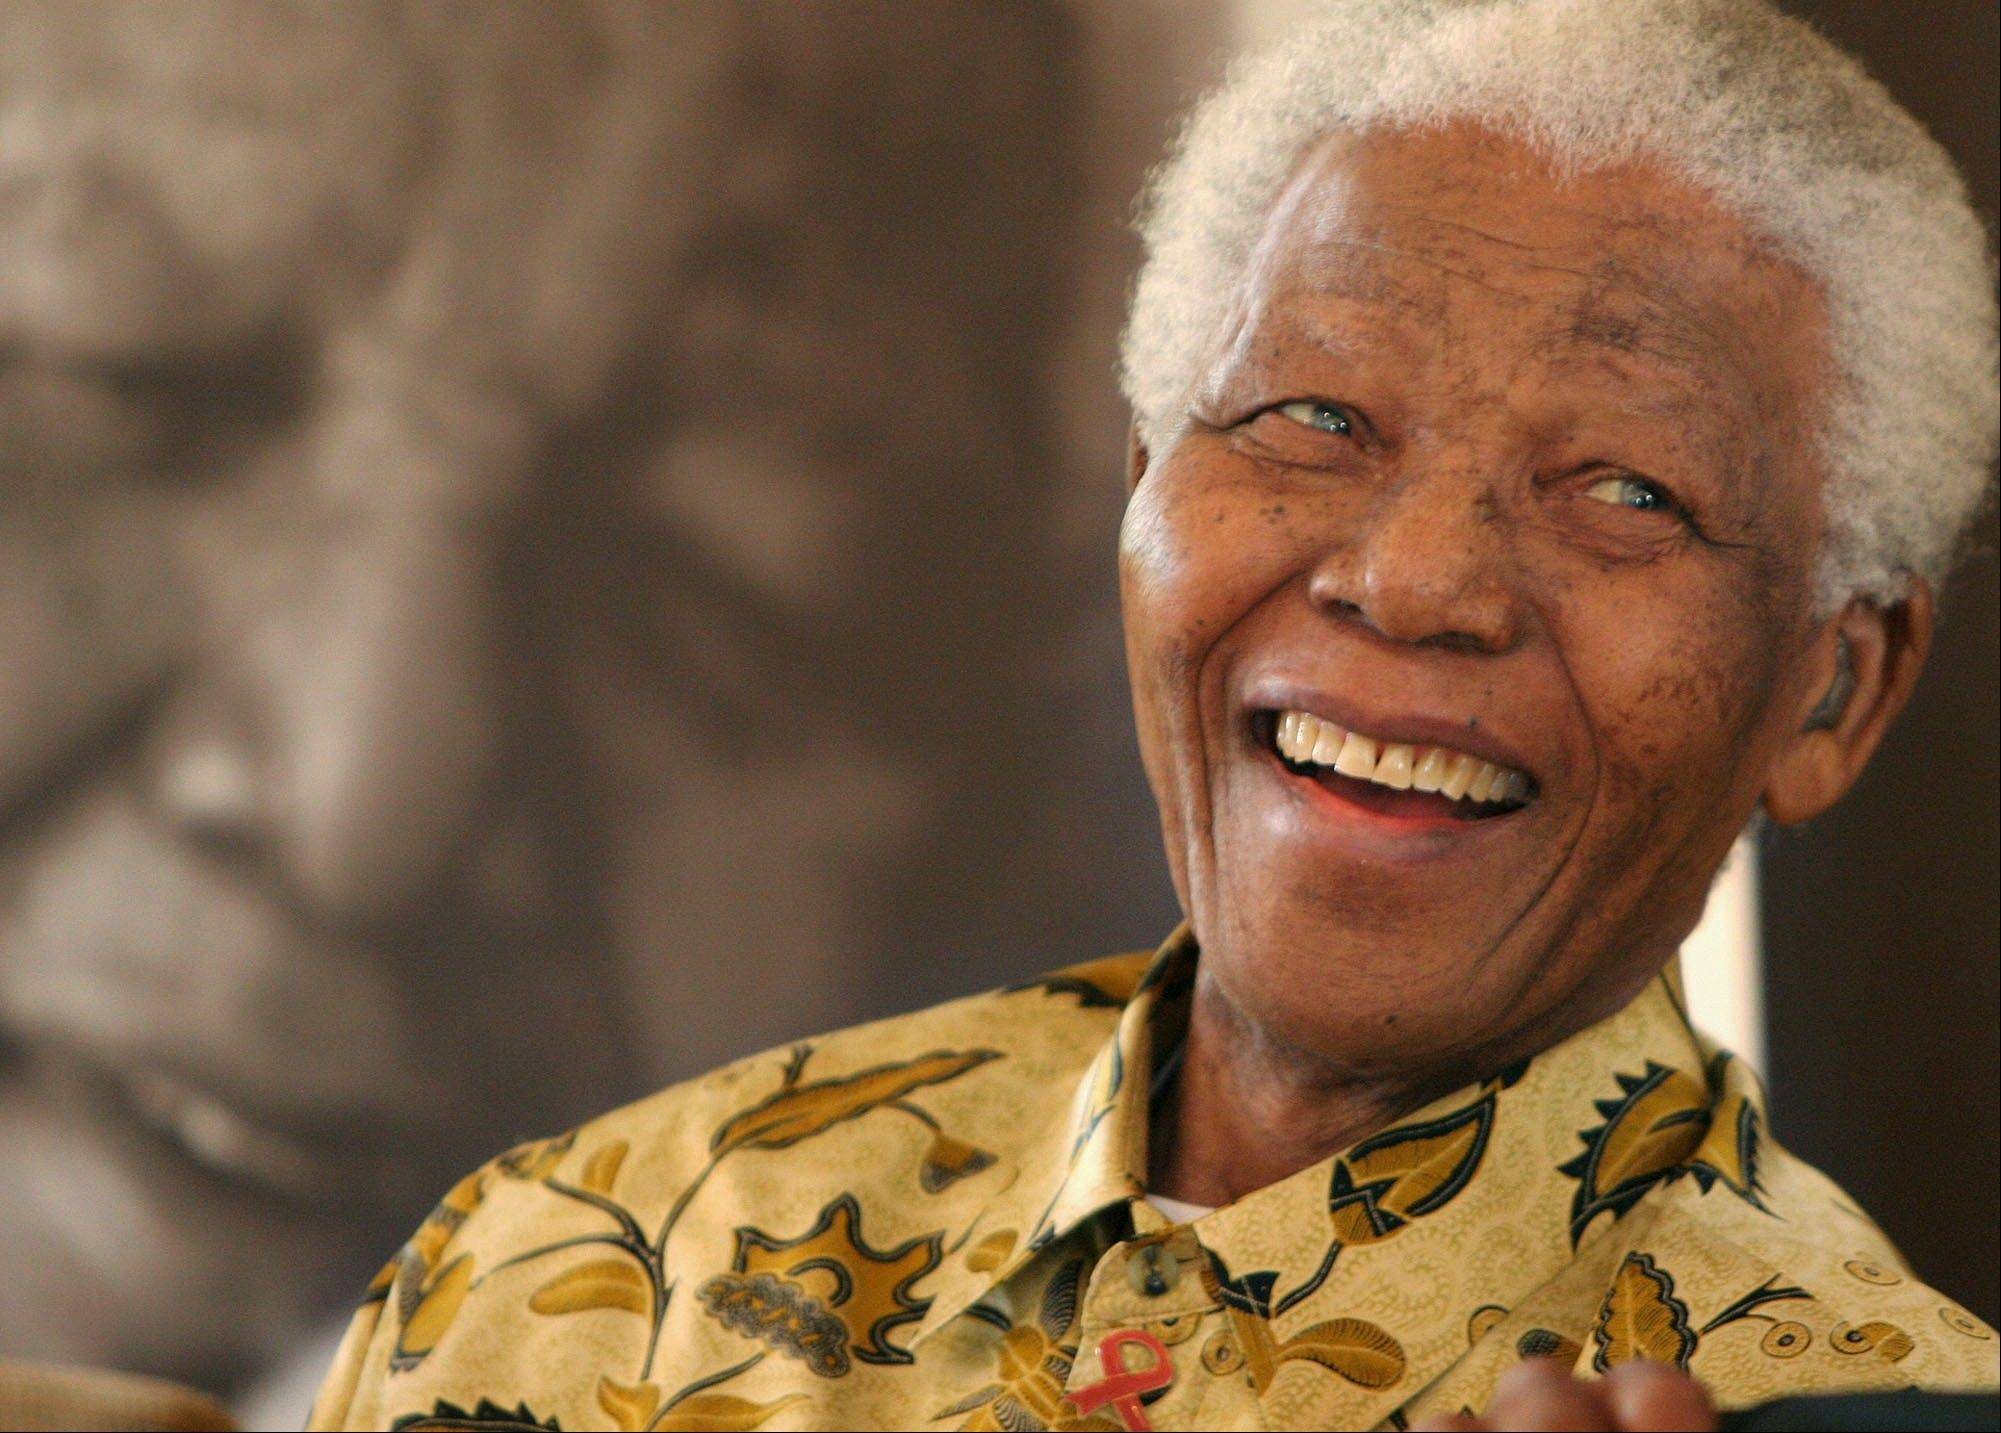 Former South African President Nelson Mandela, seen here in 2005, died Thursday. He was 95.